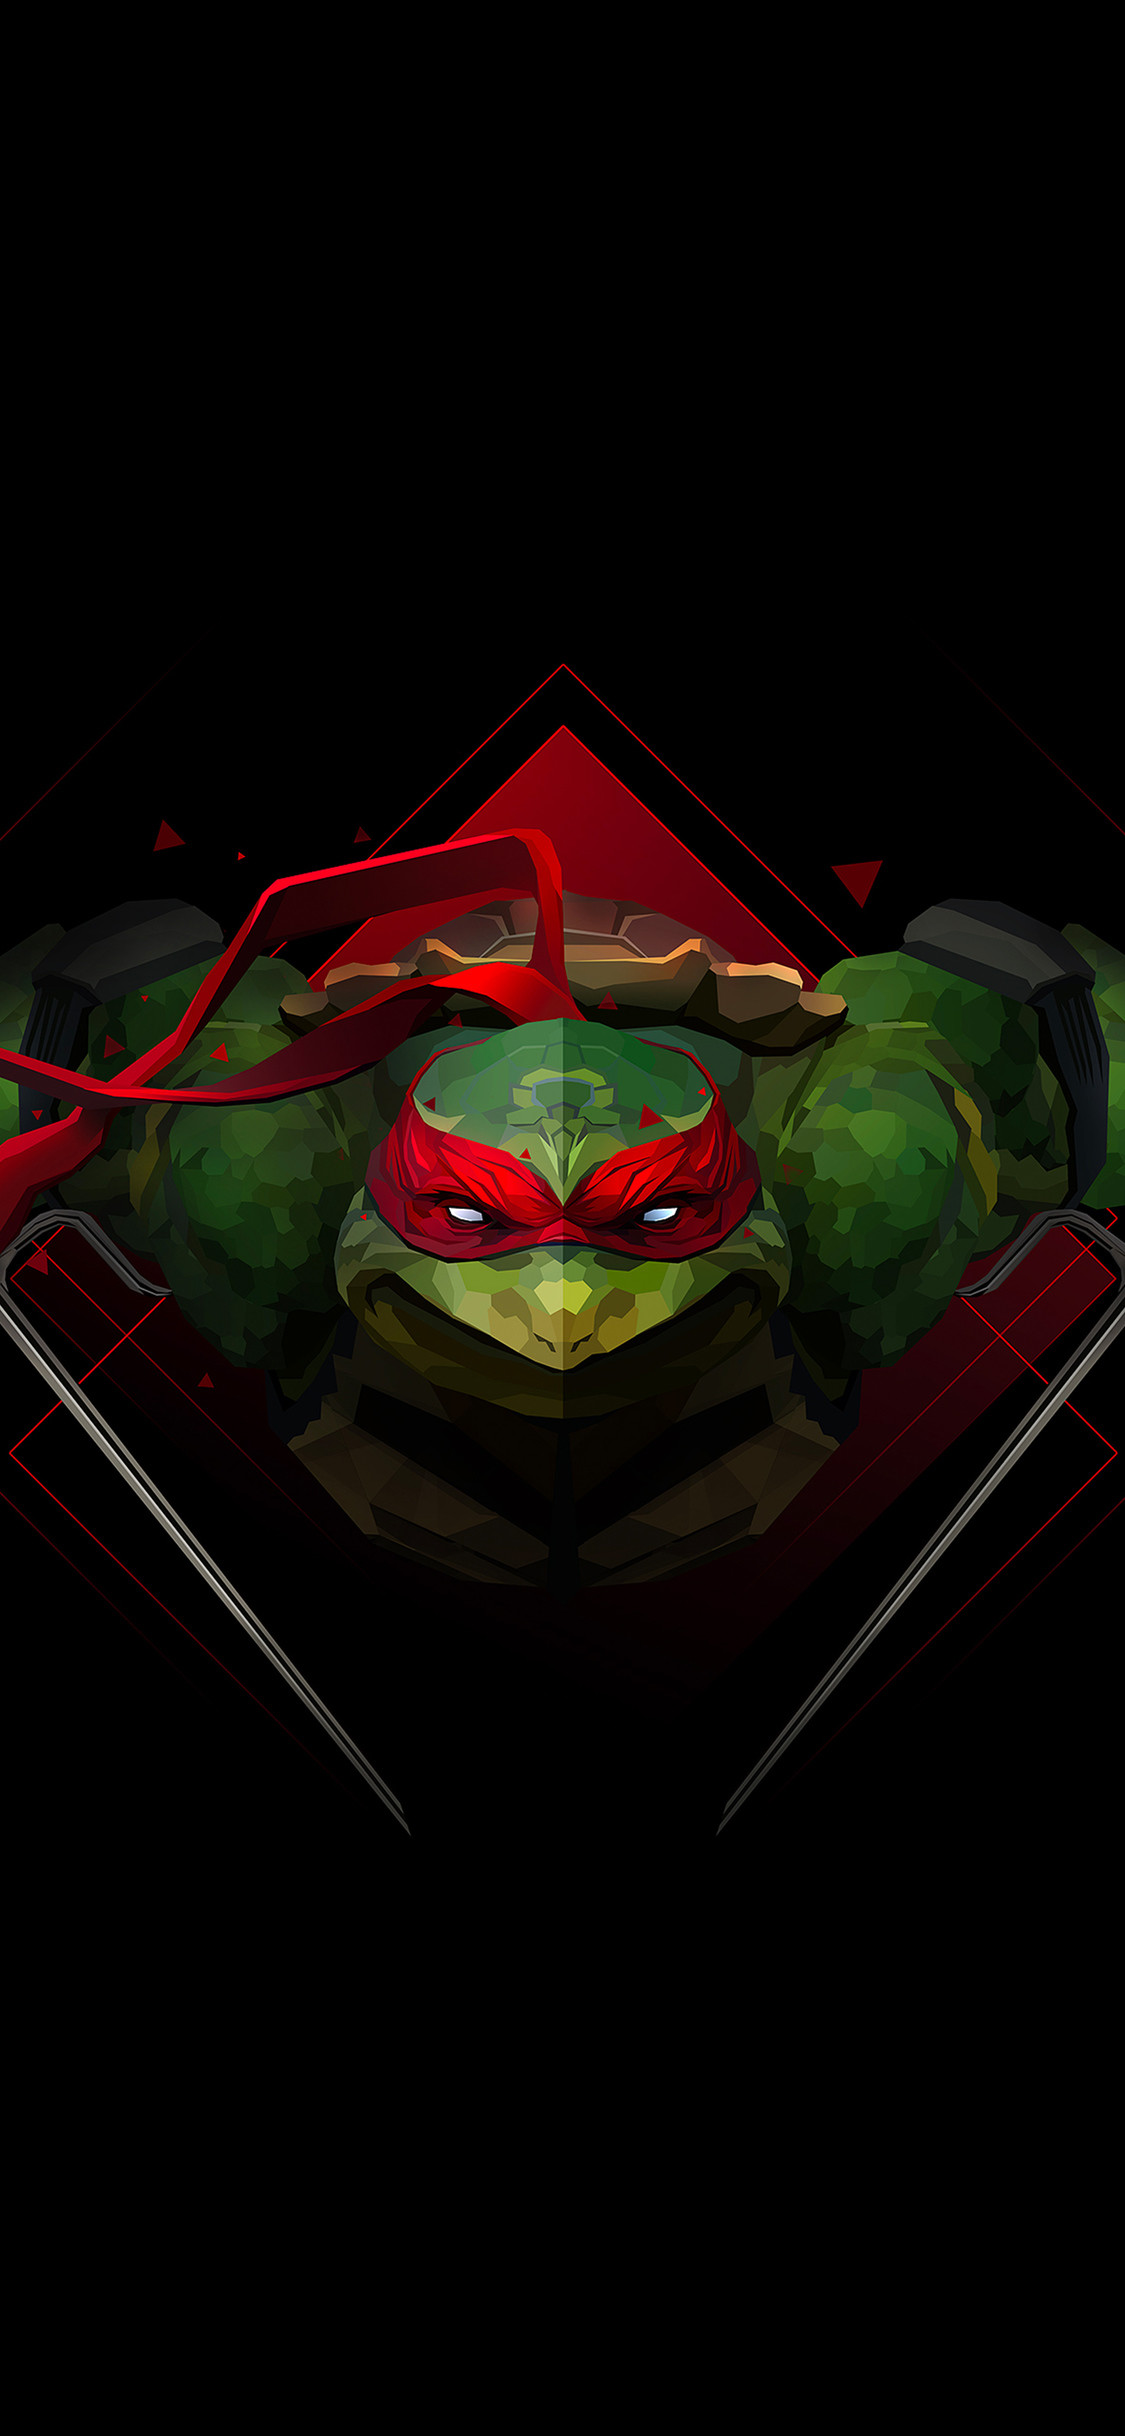 Tmnt Iphone Wallpaper 75 Images